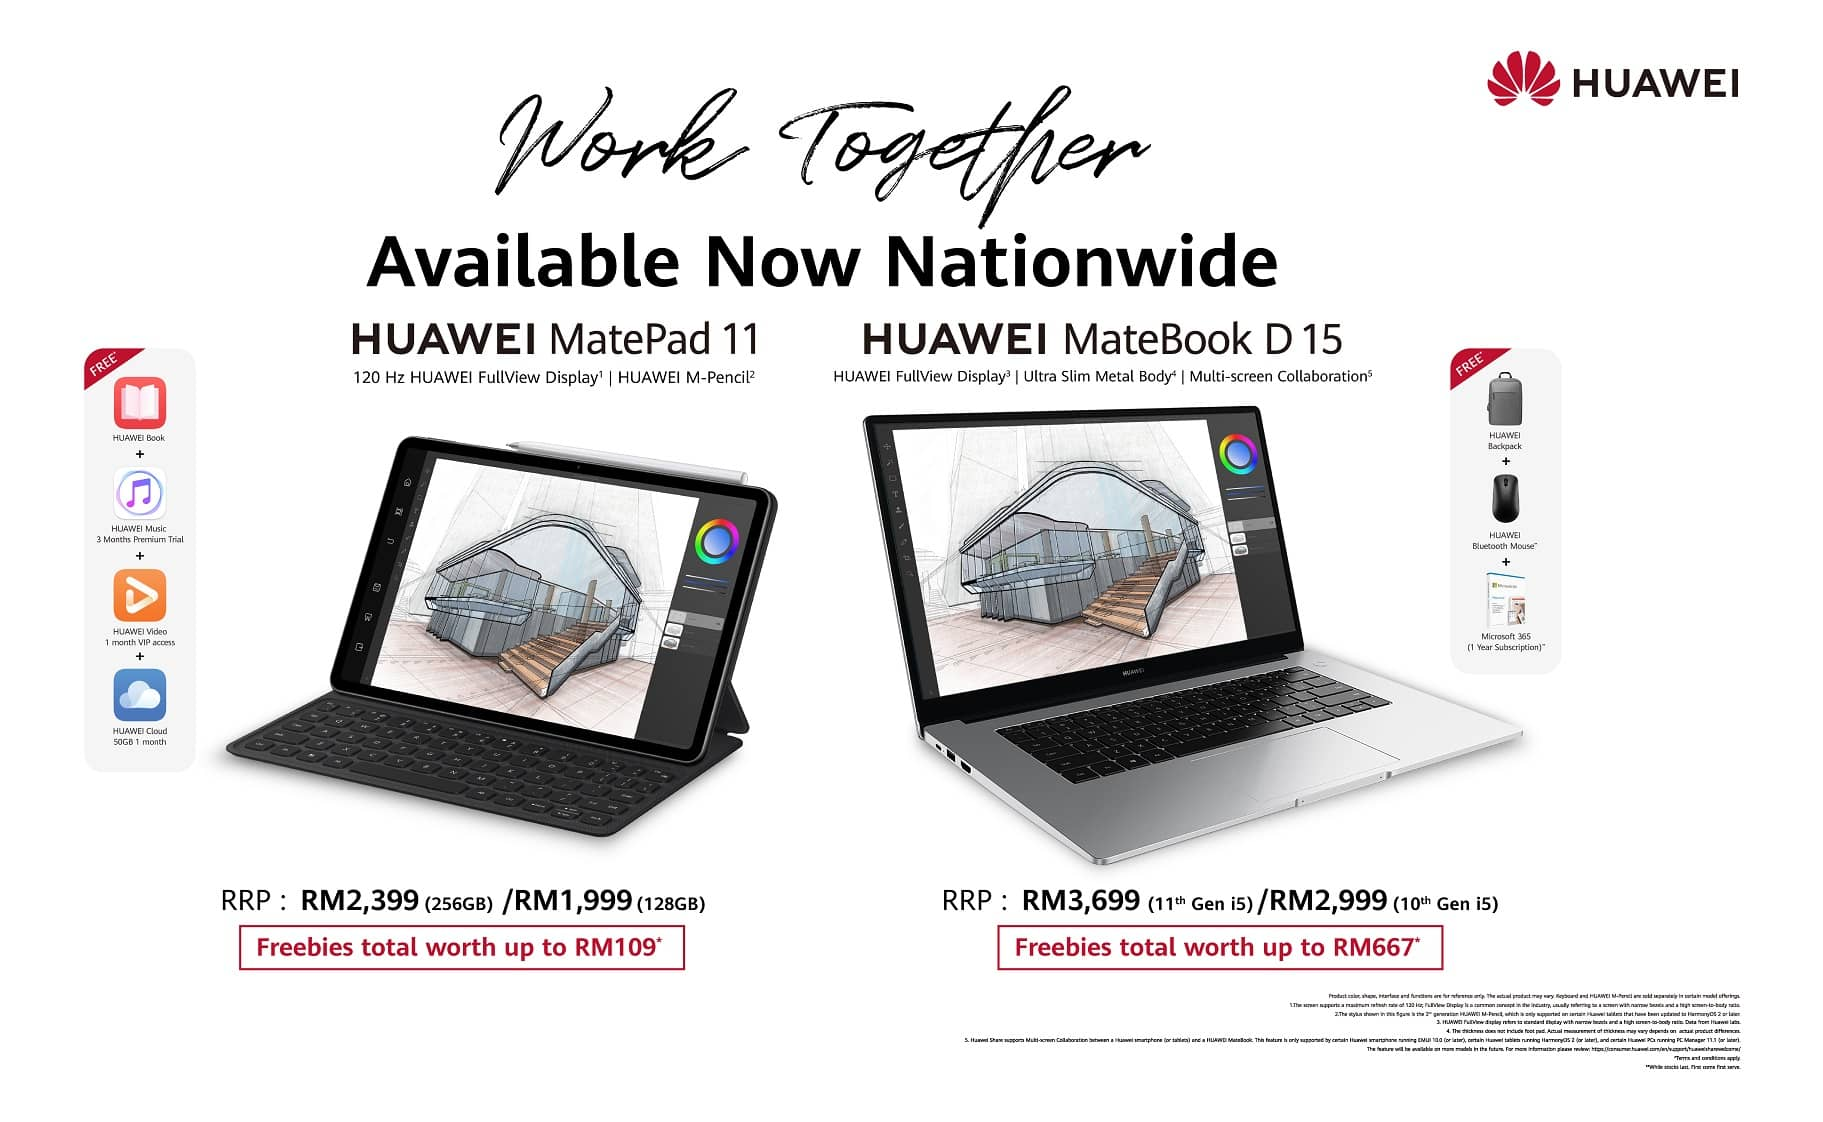 It's Finally Here! Get The HUAWEI MatePad 11 And HUAWEI MateBook D15 Today